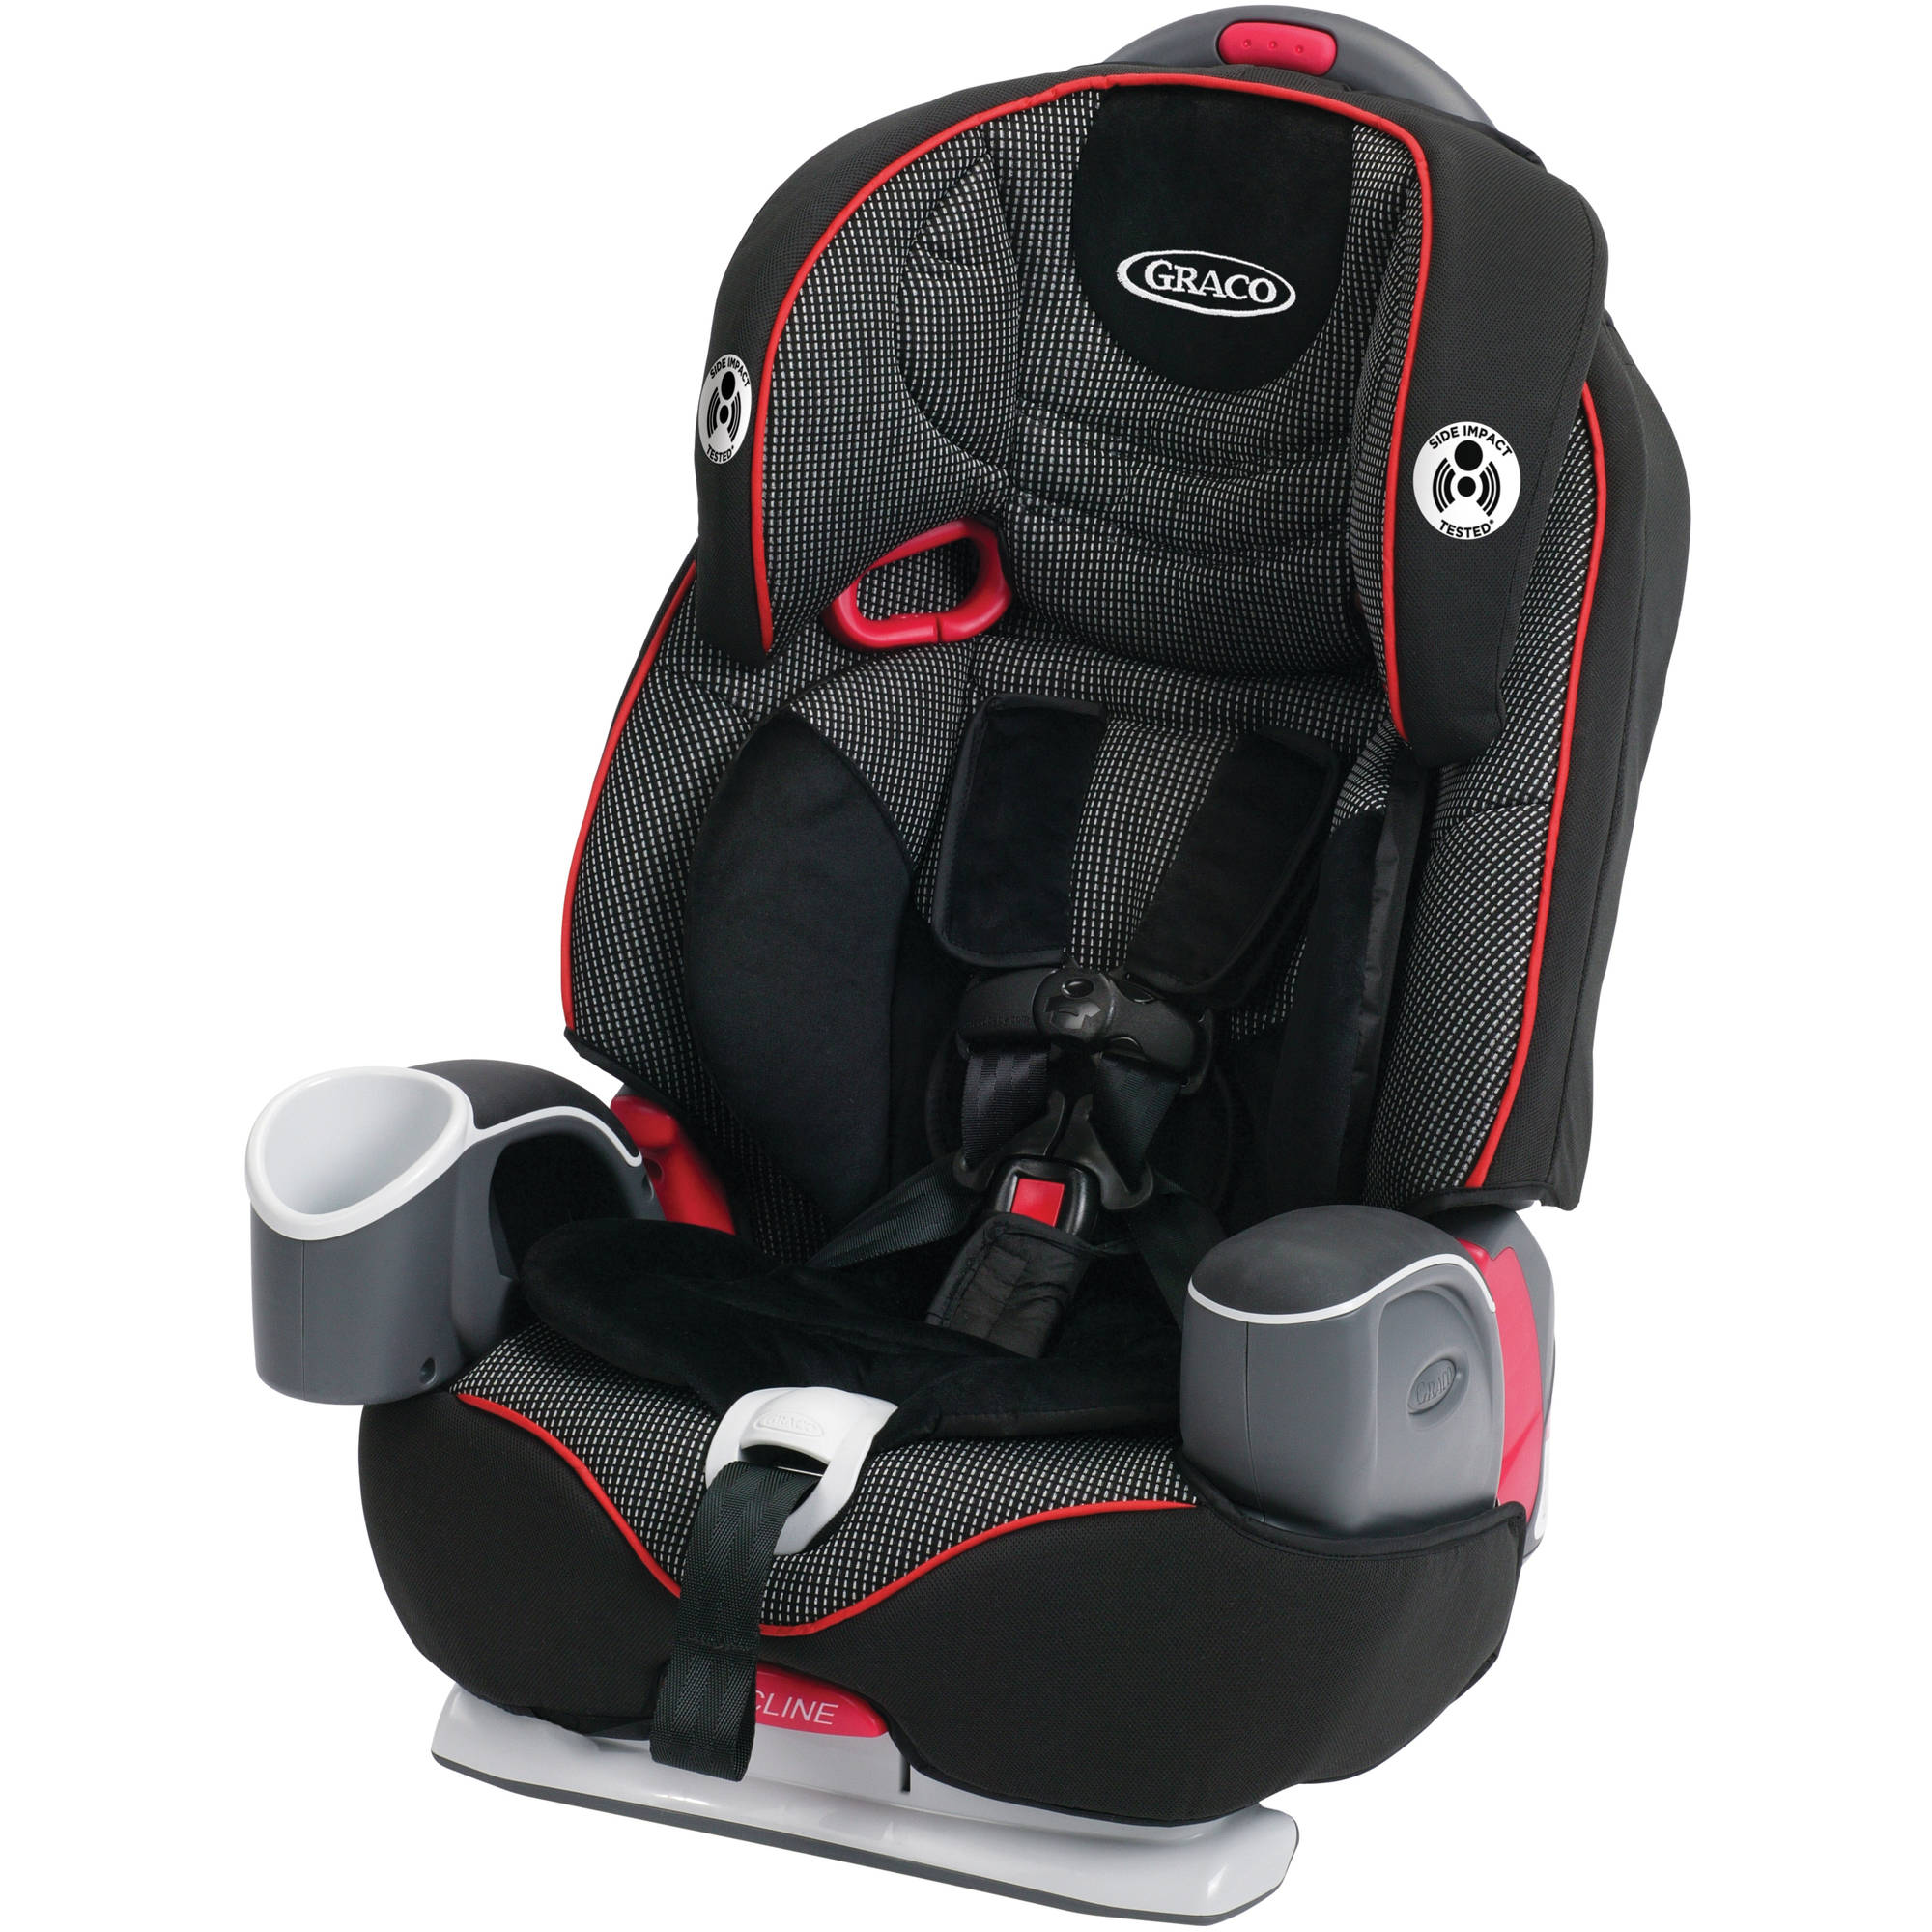 Graco Nautilus 3-in-1 Multi-Use Car Seat